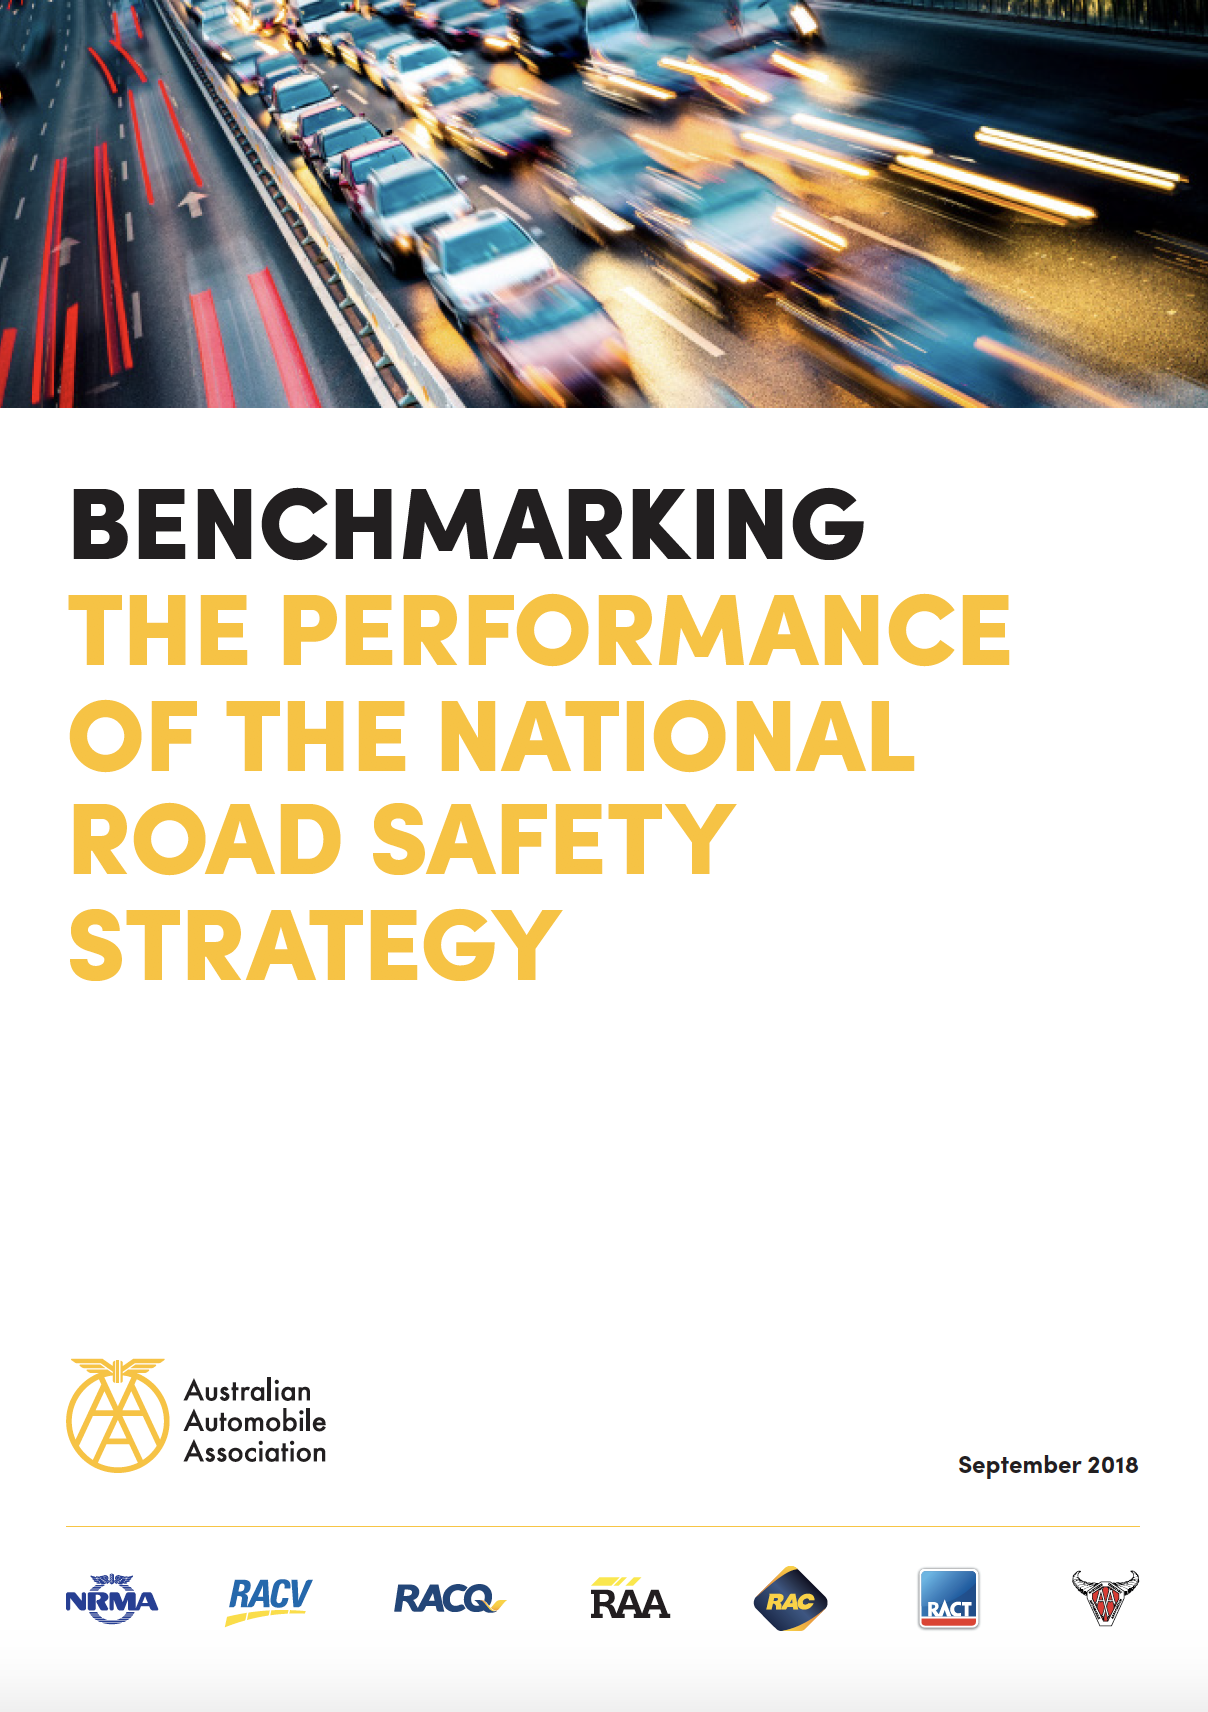 Australian Automotive Association Report, September 2018